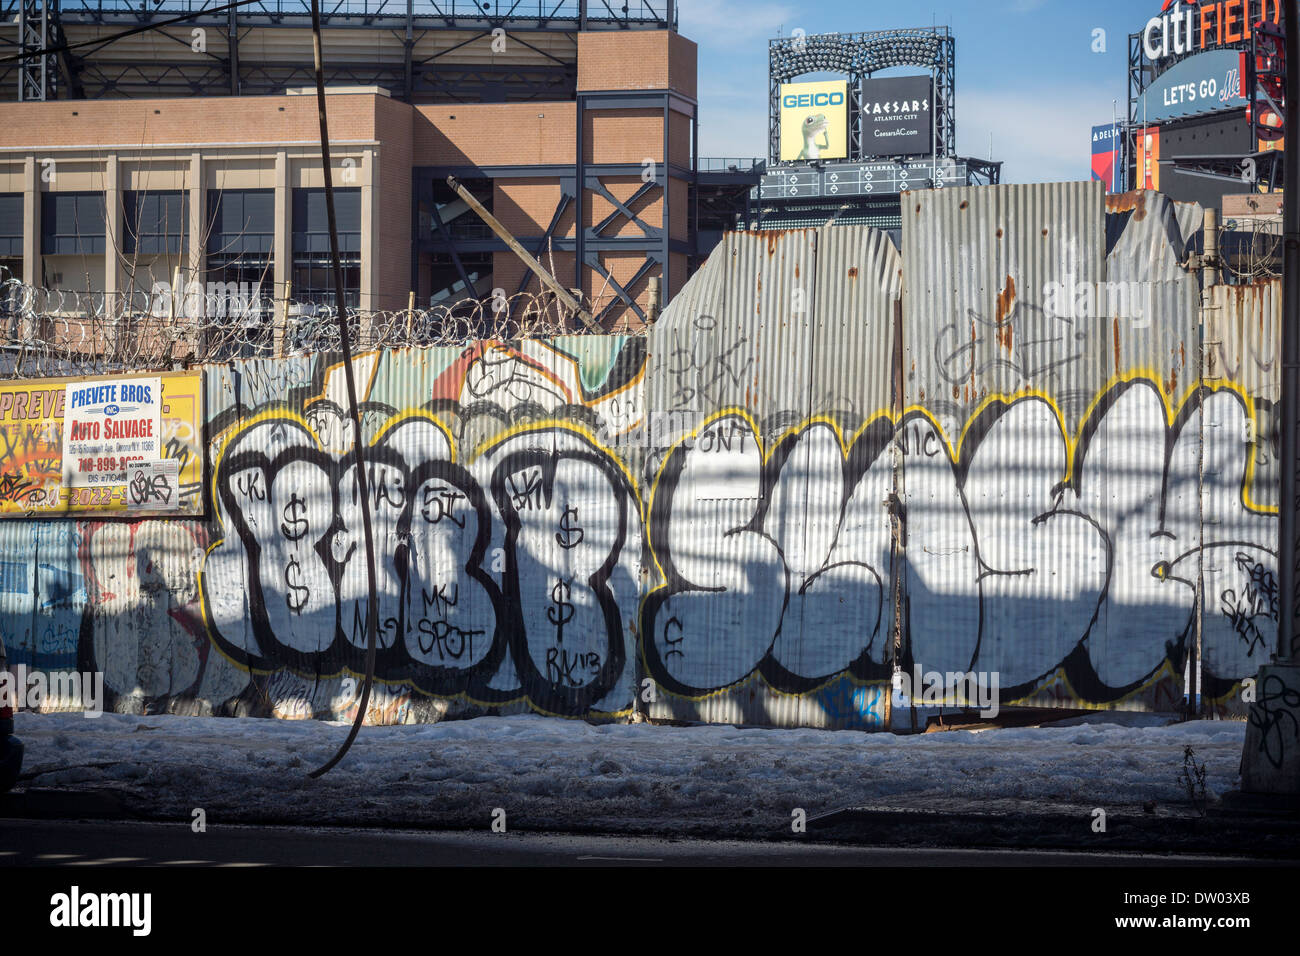 Graffiti wall in queens ny - Graffiti Covered Wall Underneath The Flushing Line Elevated Trestle In The Willets Point Neighborhood In Queens In New York